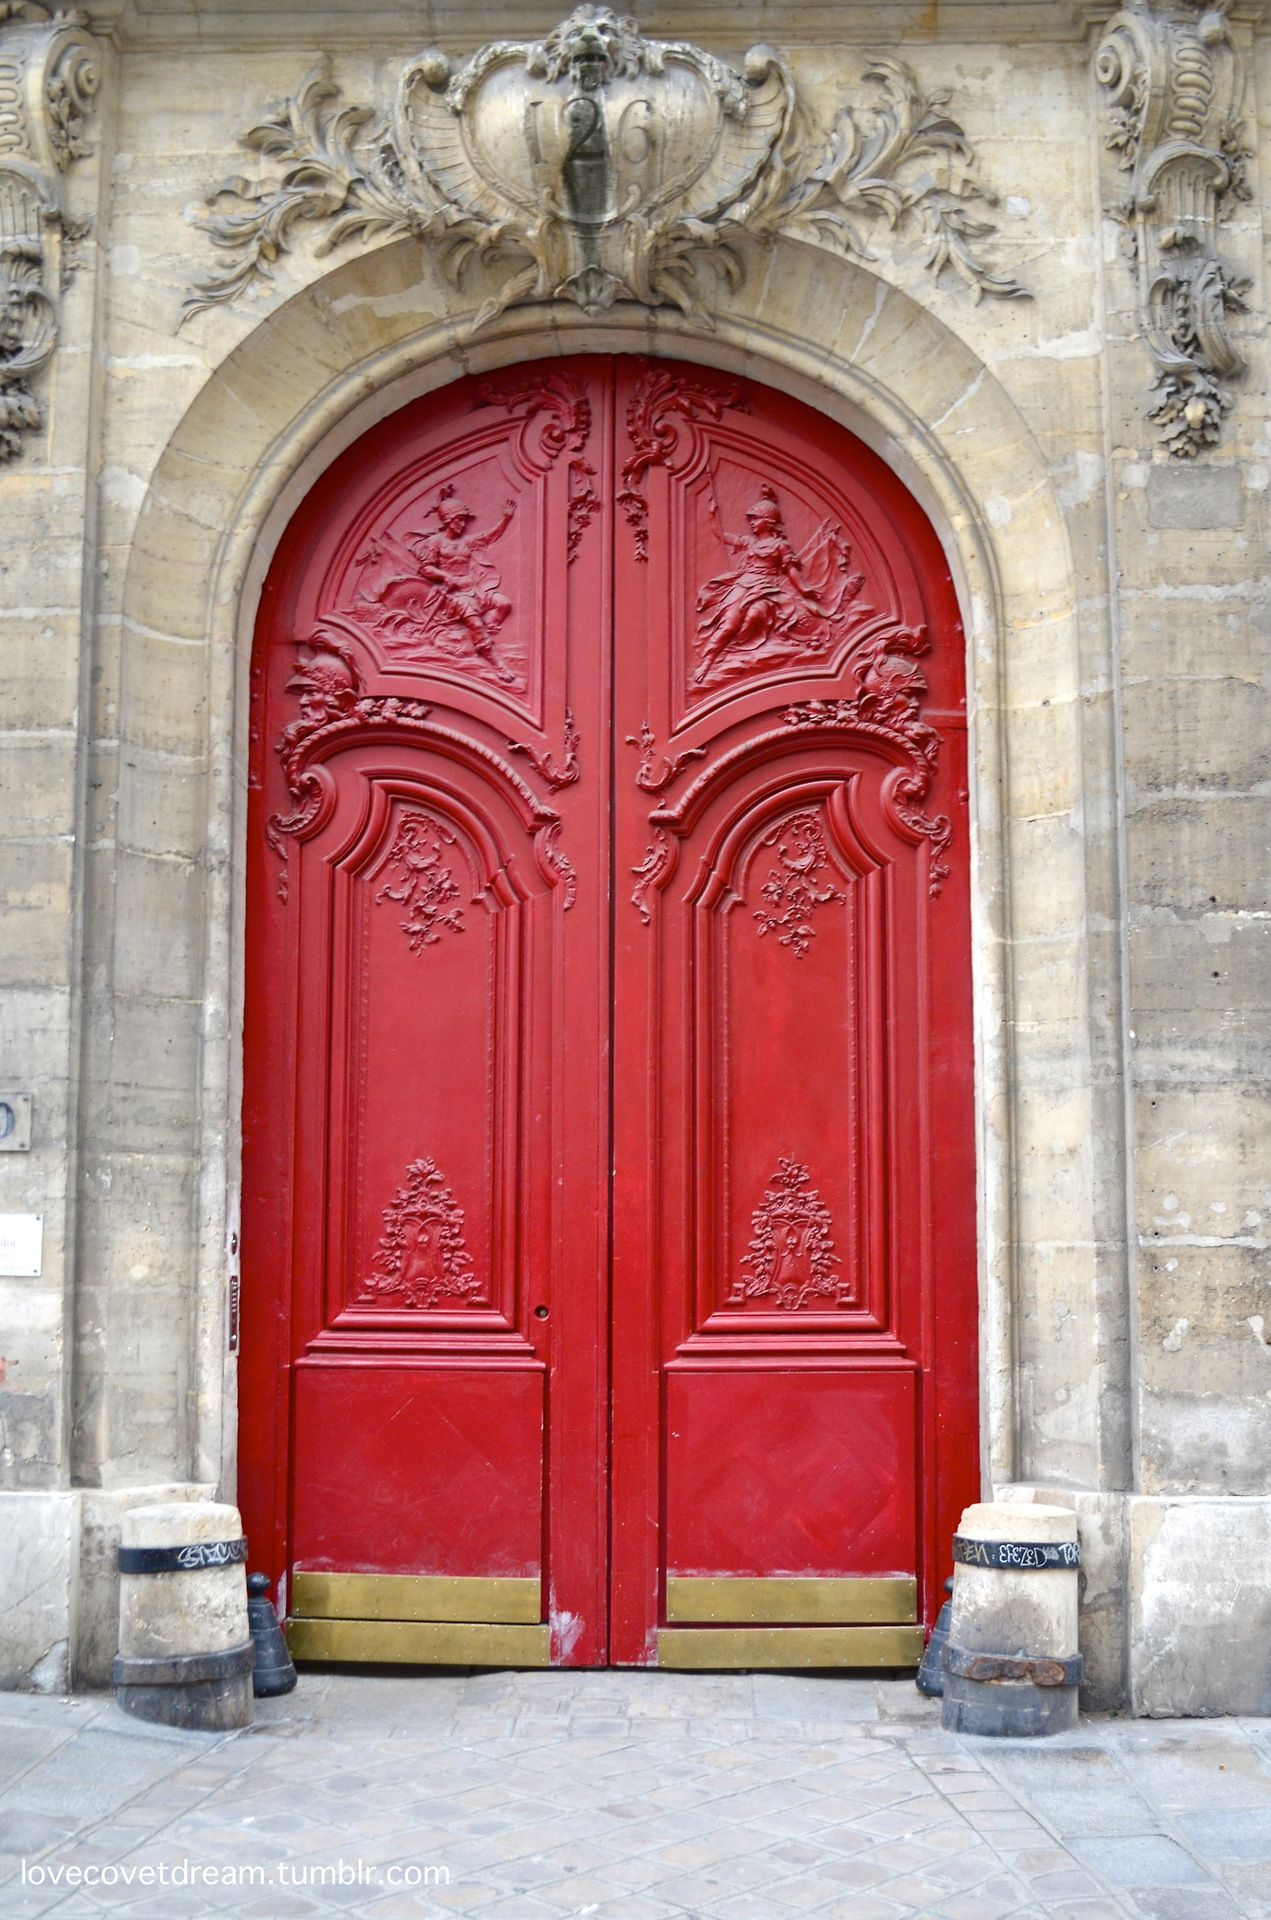 Le Meilleur Beautiful Red Door Paris France Inviting Home Inspired Ce Mois Ci